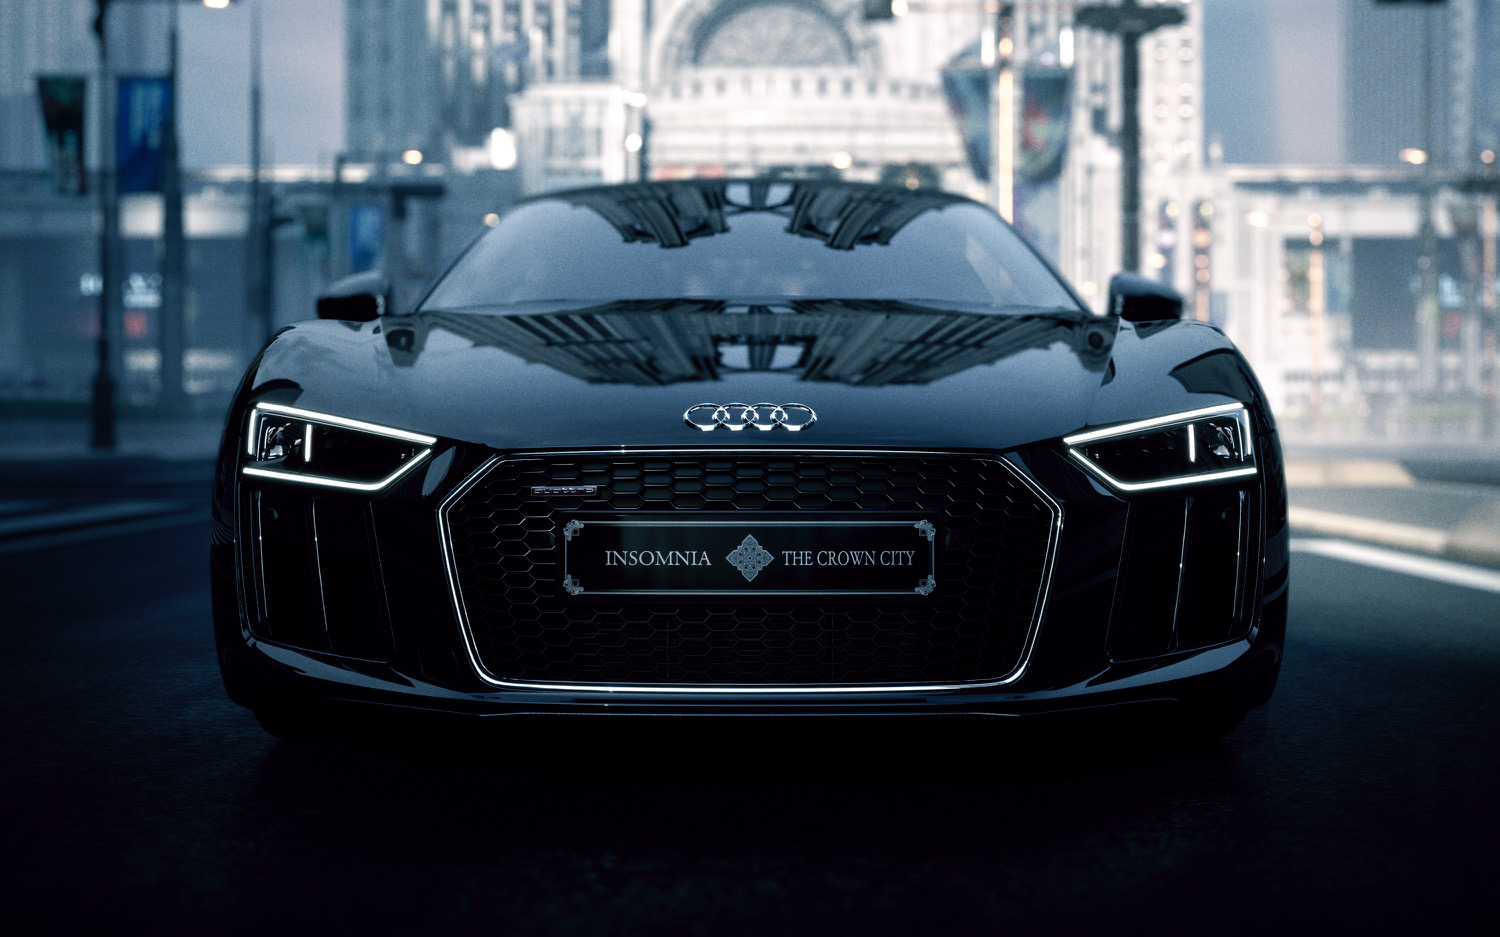 KINGS GLAIVE FINAL FANTASY XVに登場する新型 Audi R8 「The Audi R8 Star of Lucis」の一台限定販売が決定!